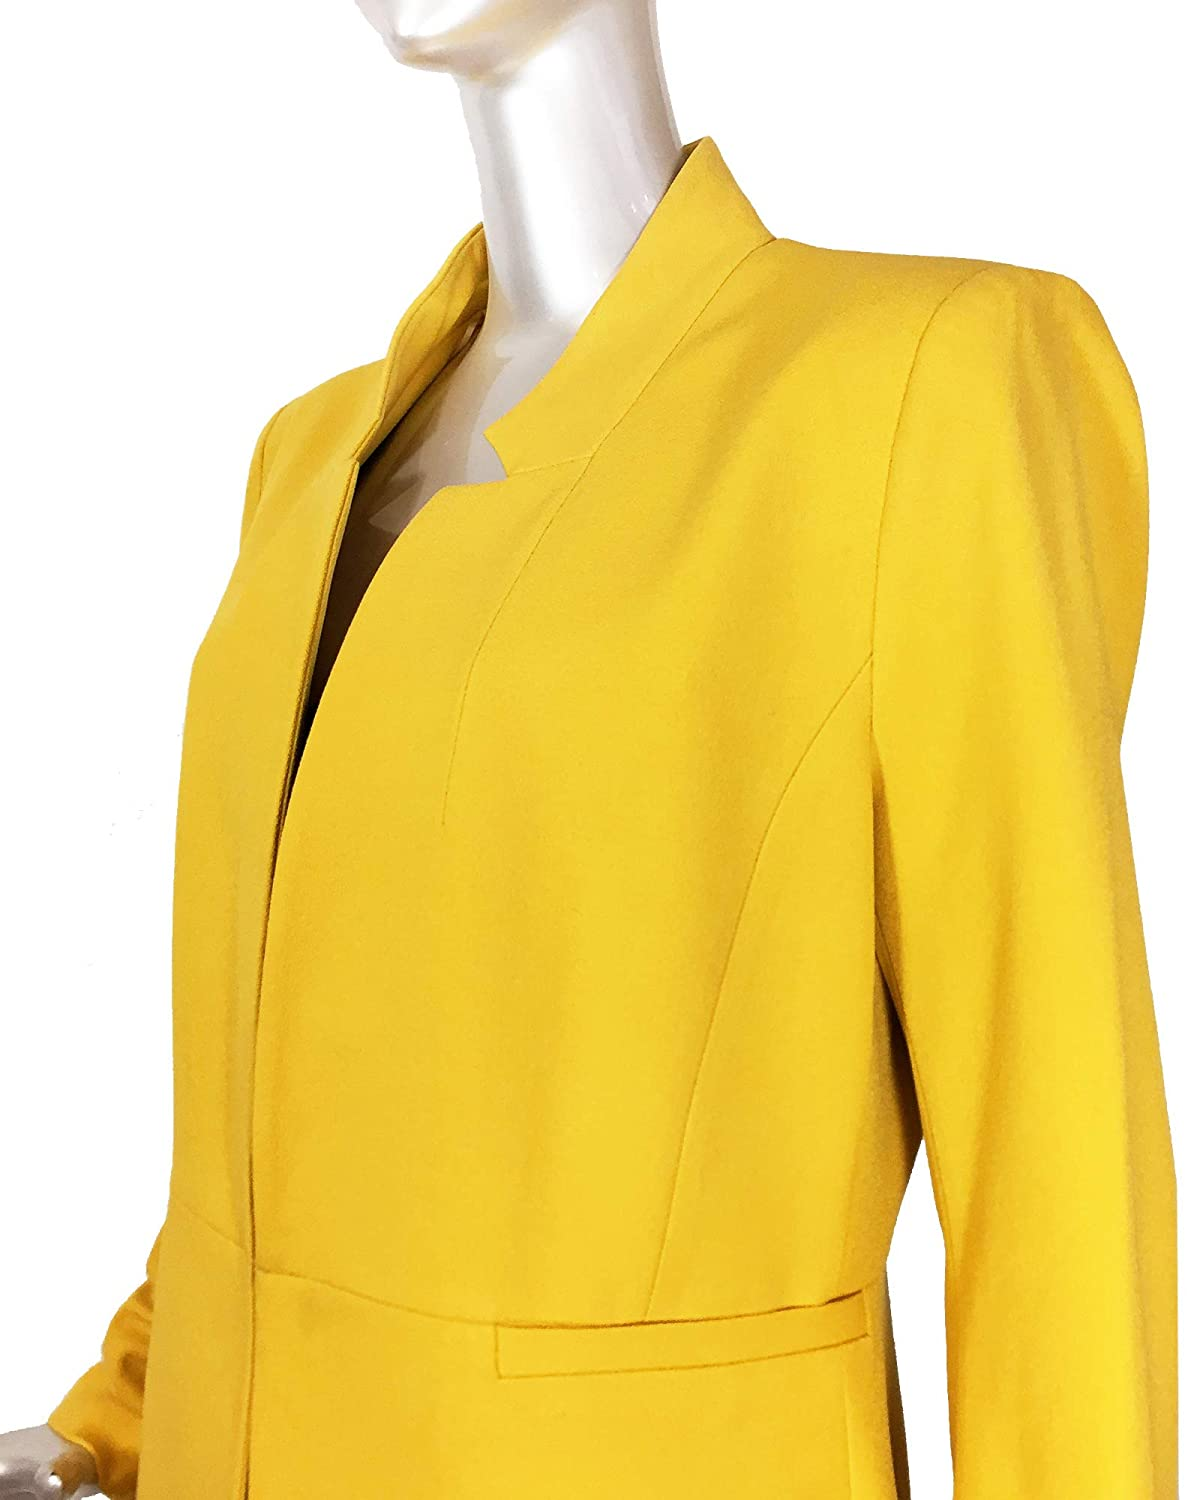 1eb4f161 Zara Women's Inverted Lapel Frock Coat 2143/293: Amazon.co.uk: Clothing